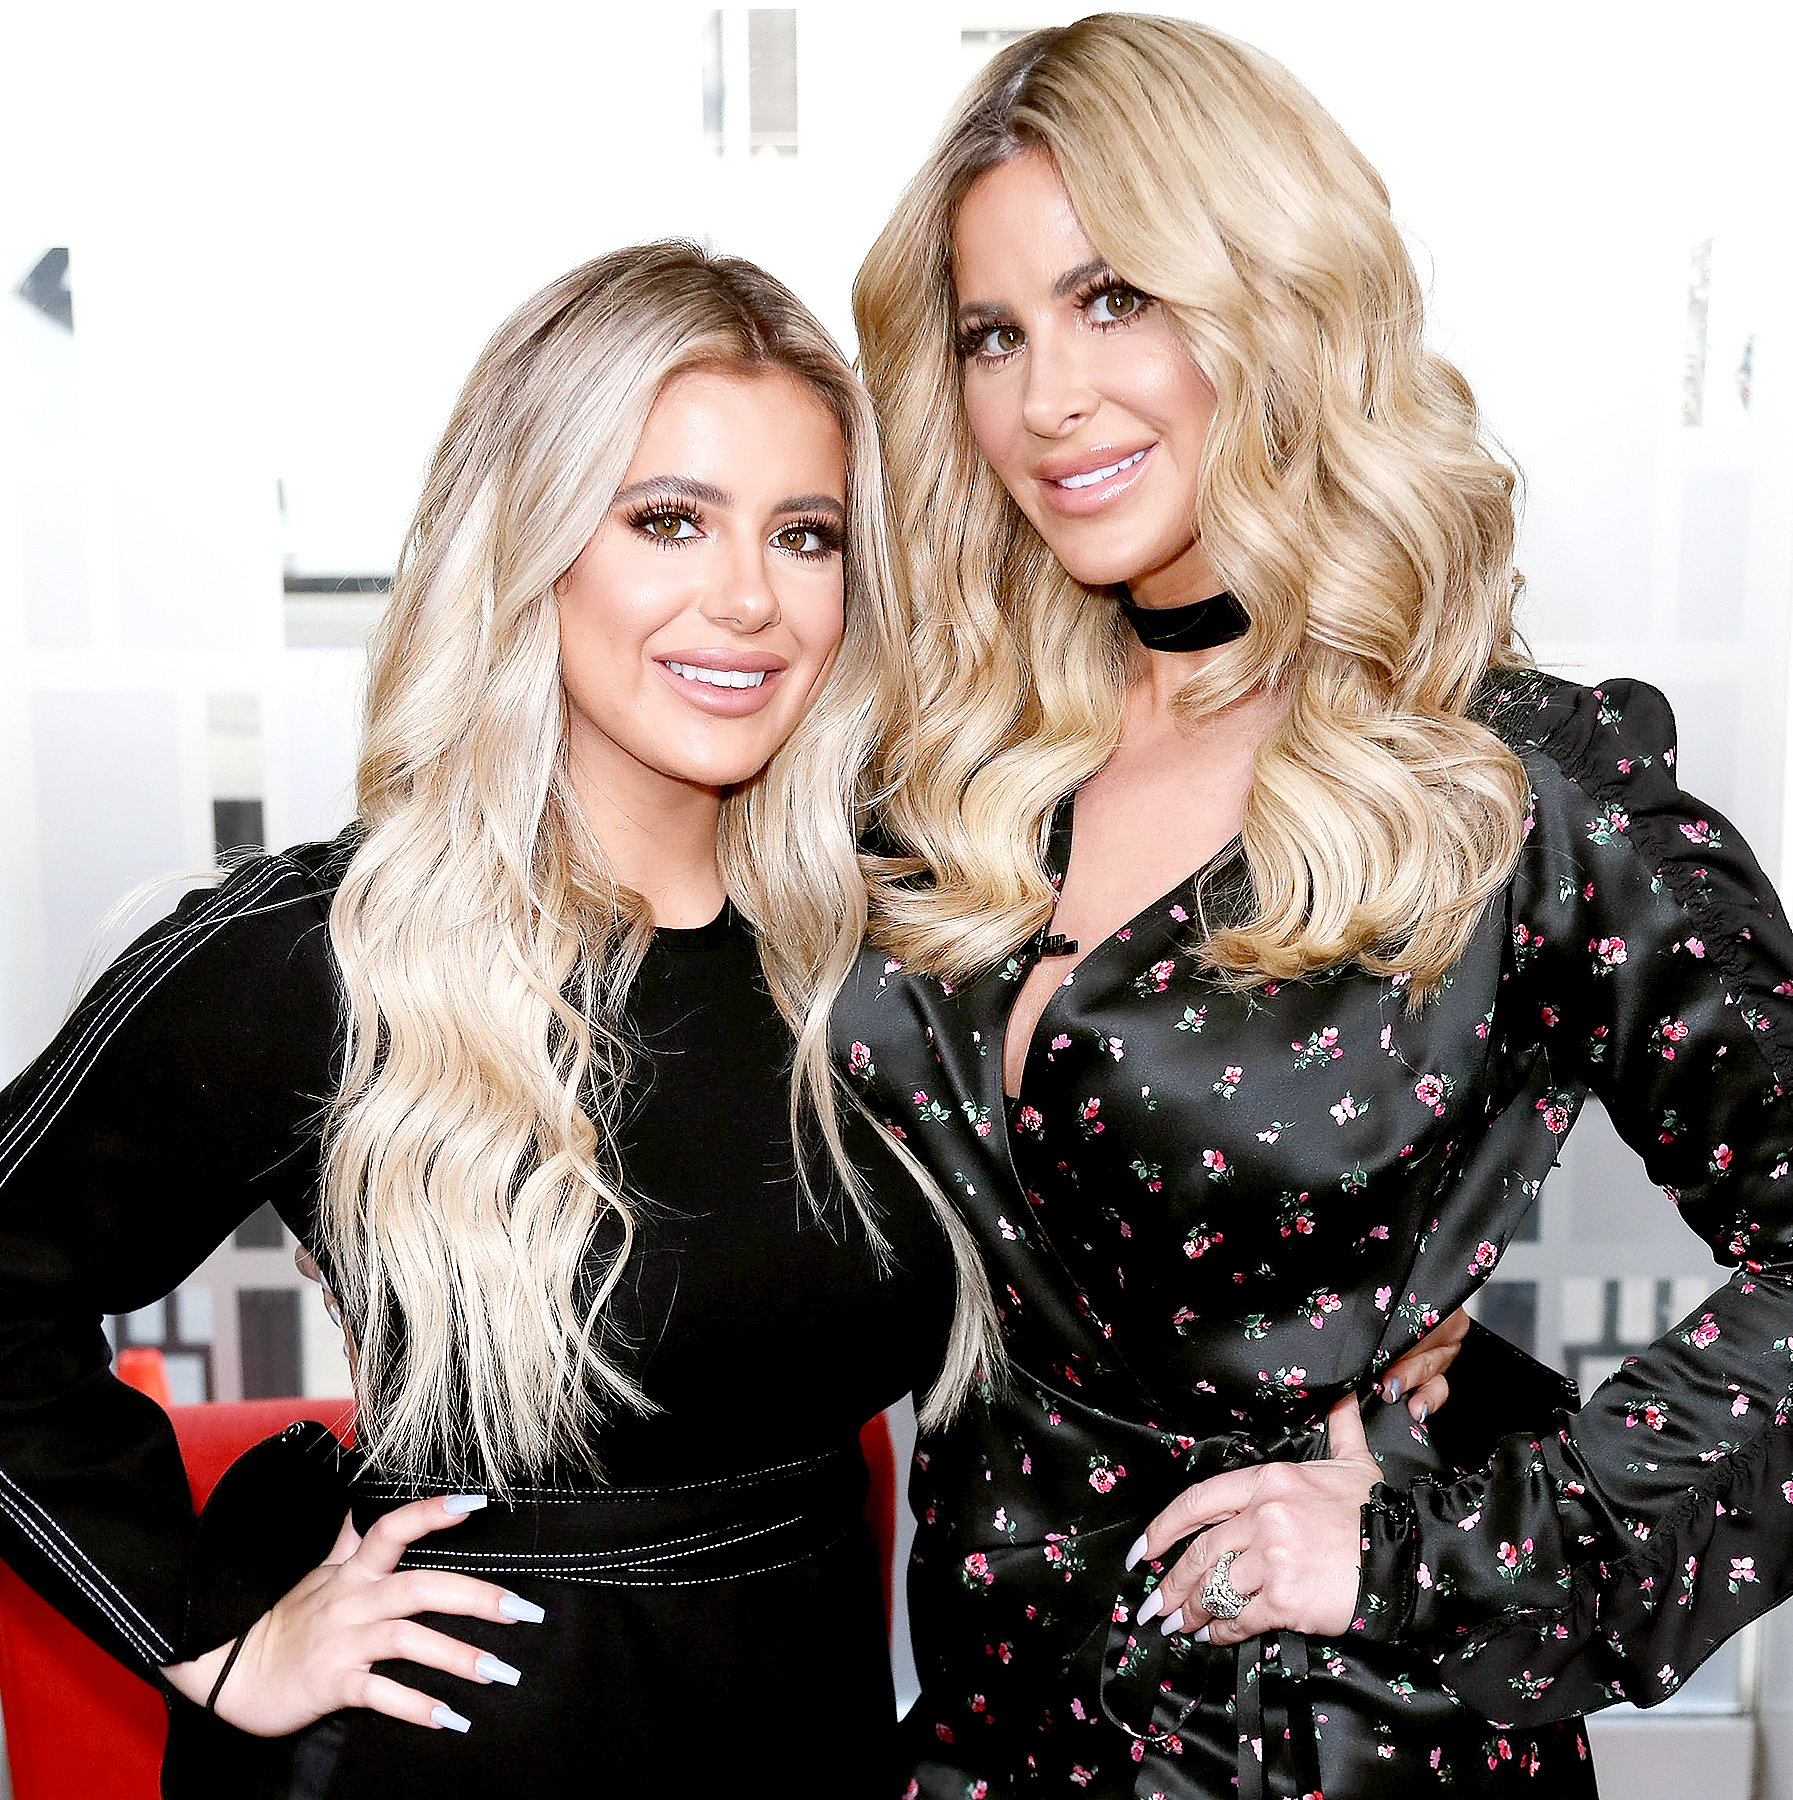 Kim Zolciak (R) and daughter Brielle Biermann visit Hollywood Today Live at W Hollywood on October 13, 2016 in Hollywood, California.